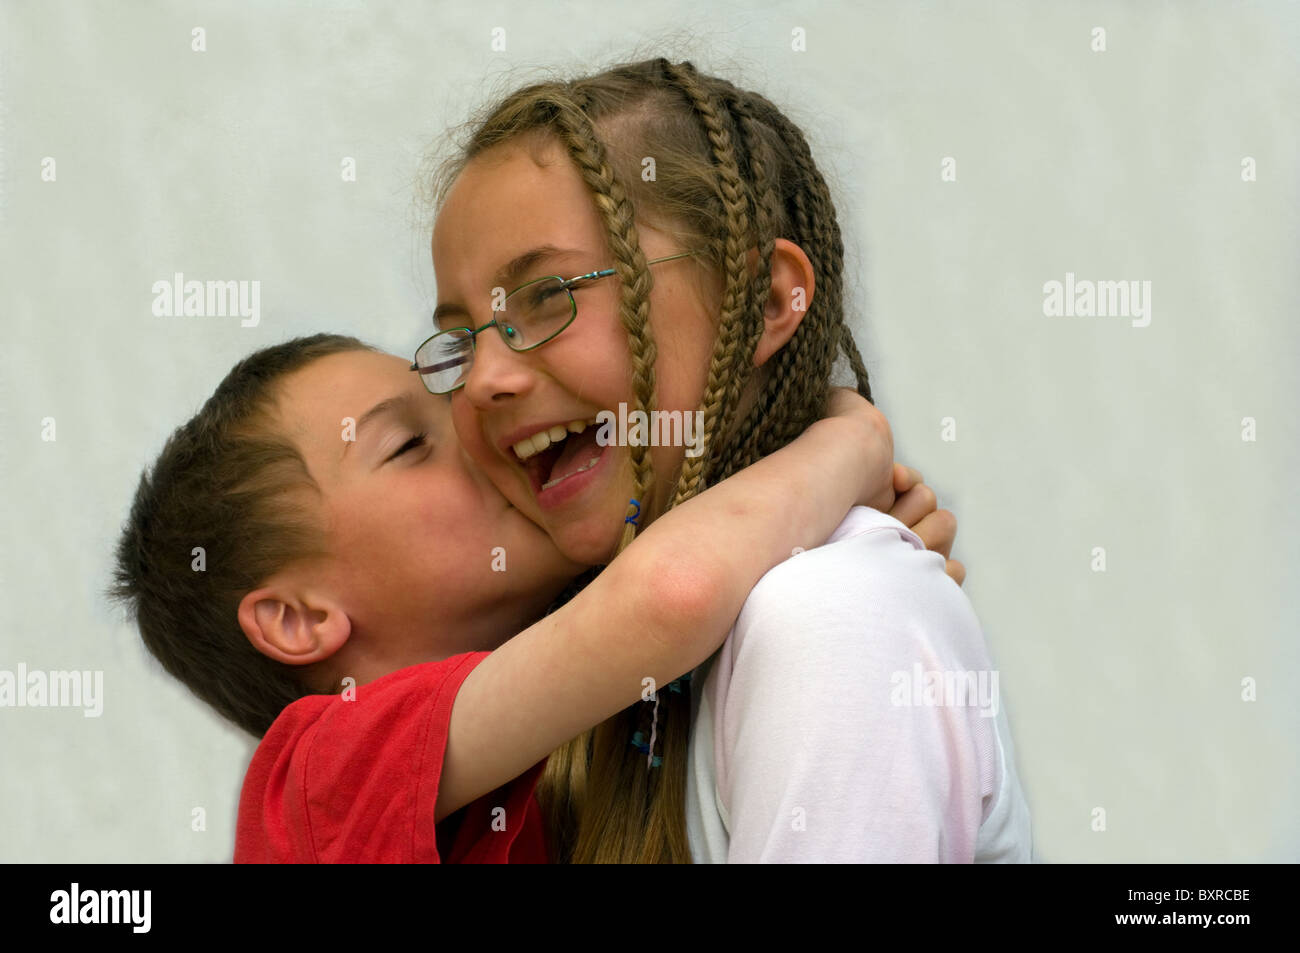 A younger brother kissing his older sister - Stock Image